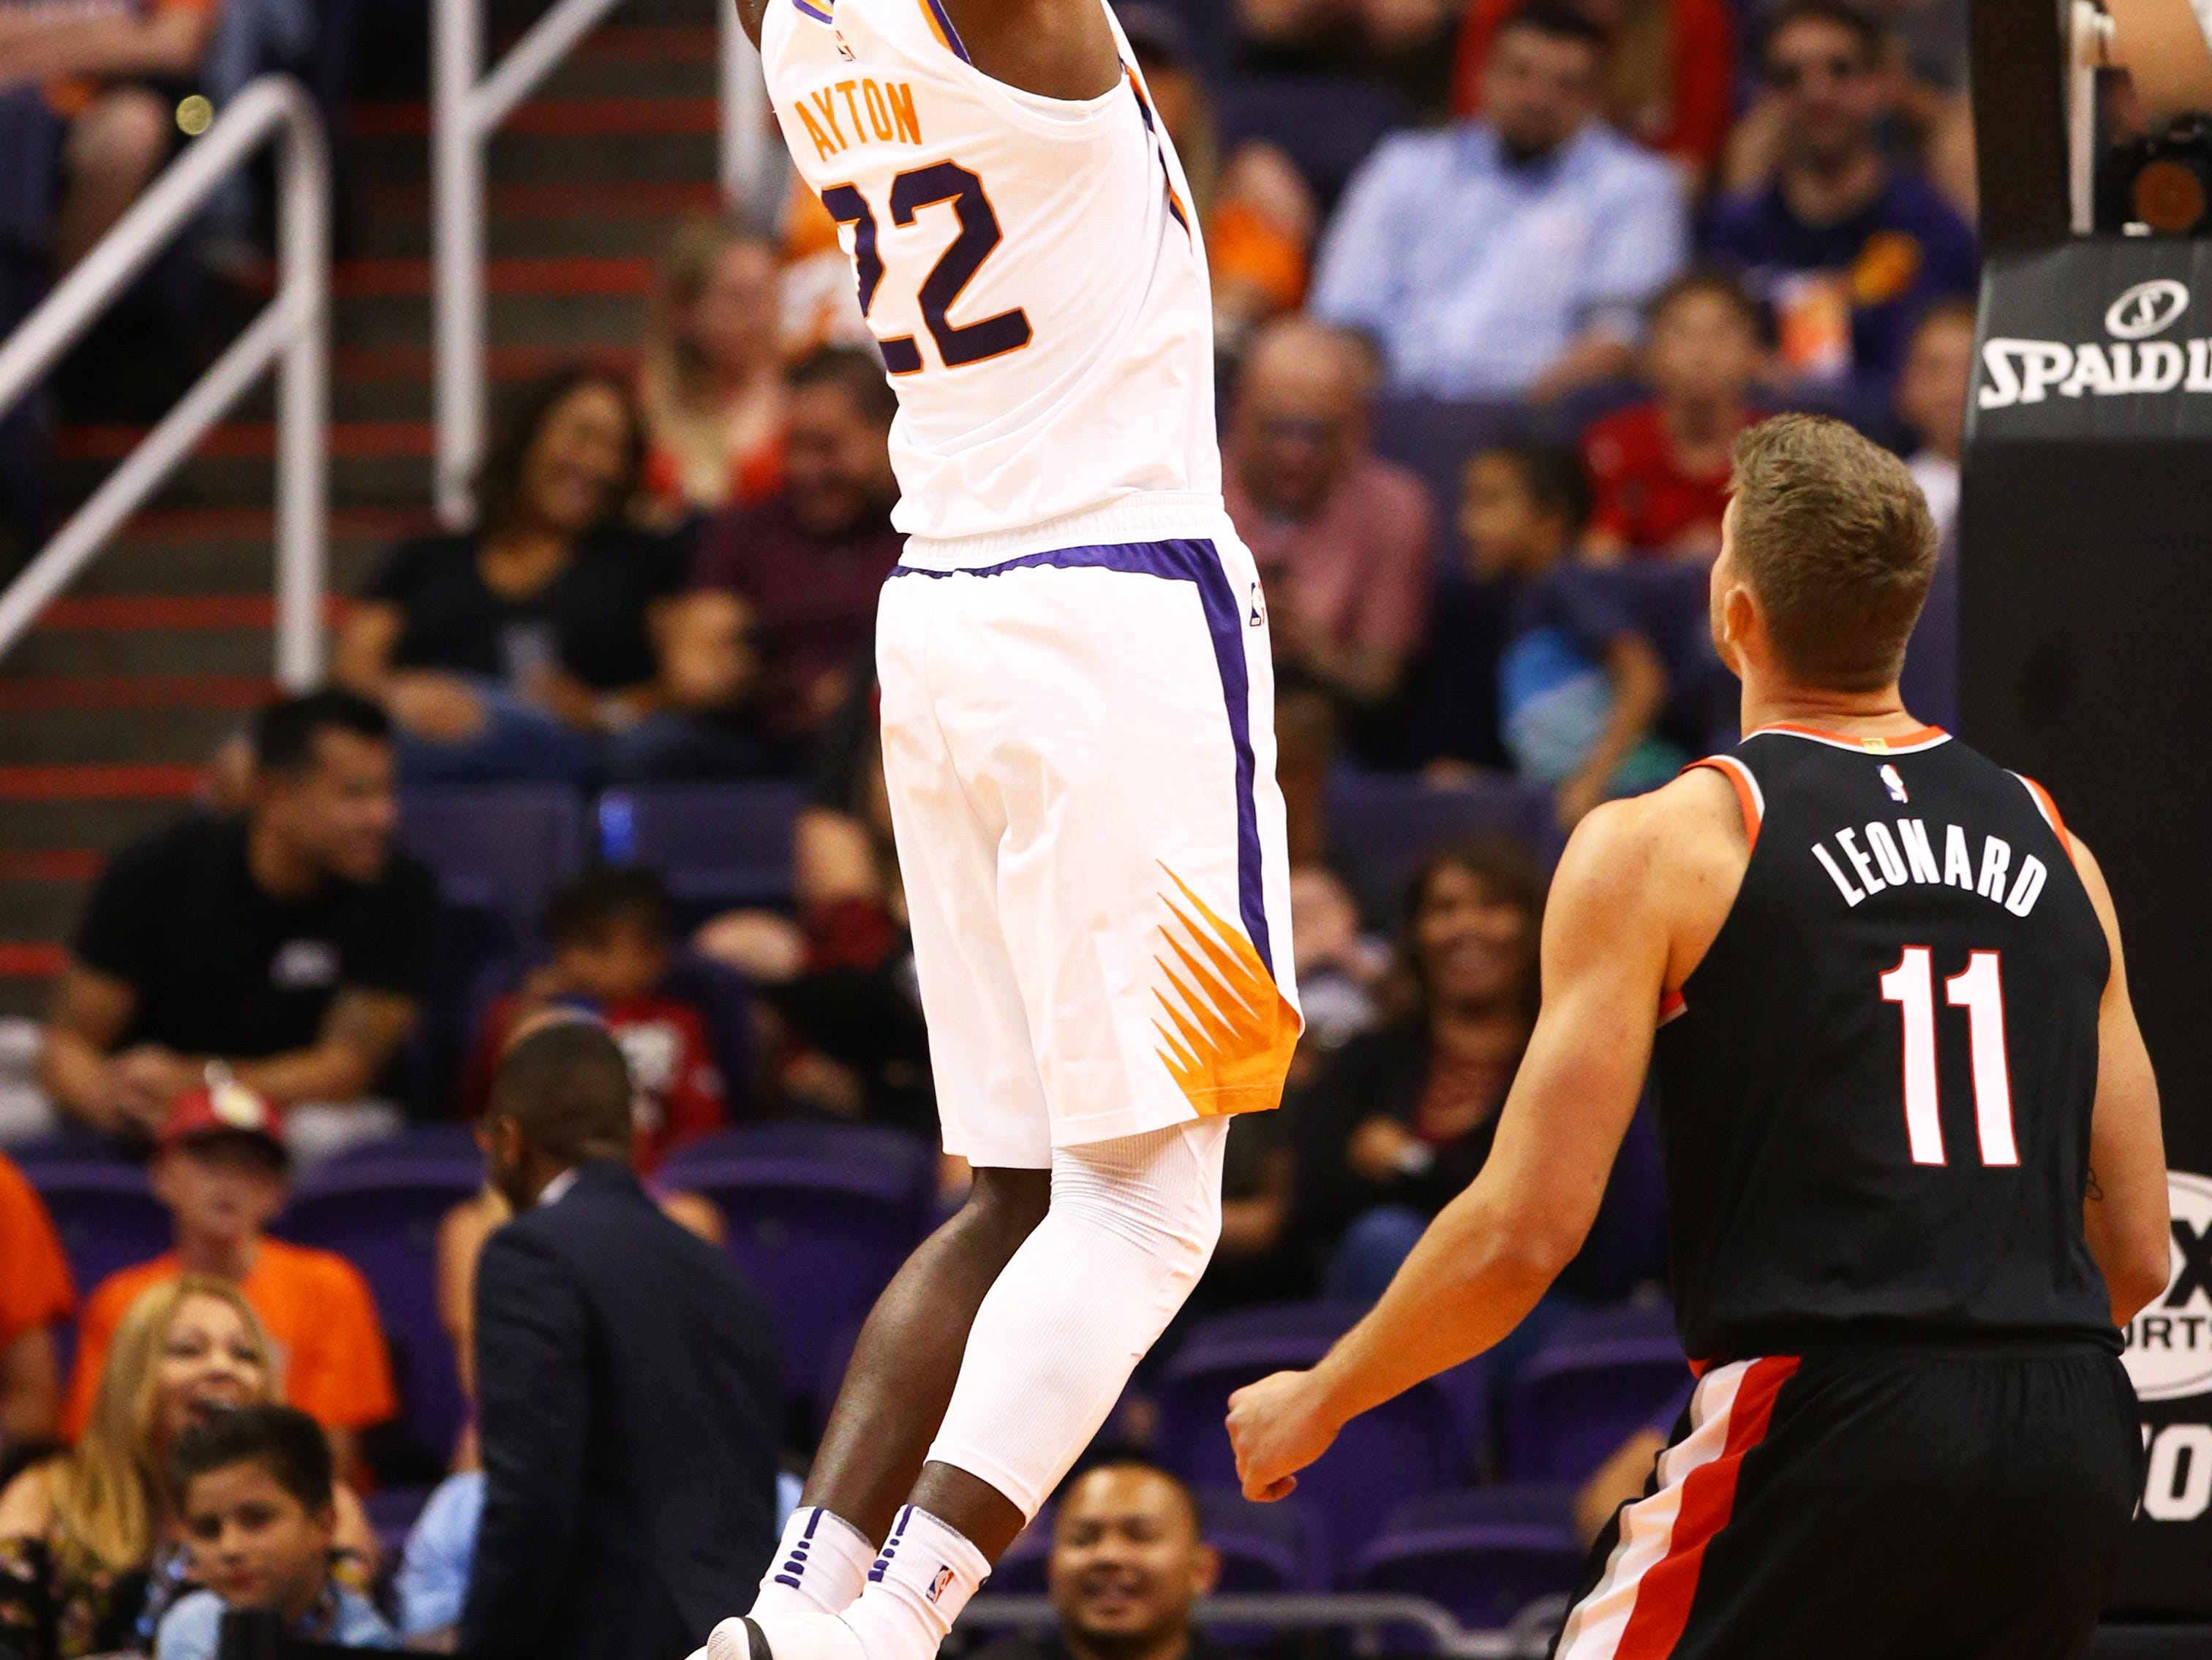 Phoenix Suns center Deandre Ayton dunks the ball against the Portland Trail Blazers during a preseason game at Talking Stick Resort Arena on Oct. 5, 2018, in Phoenix, Ariz.